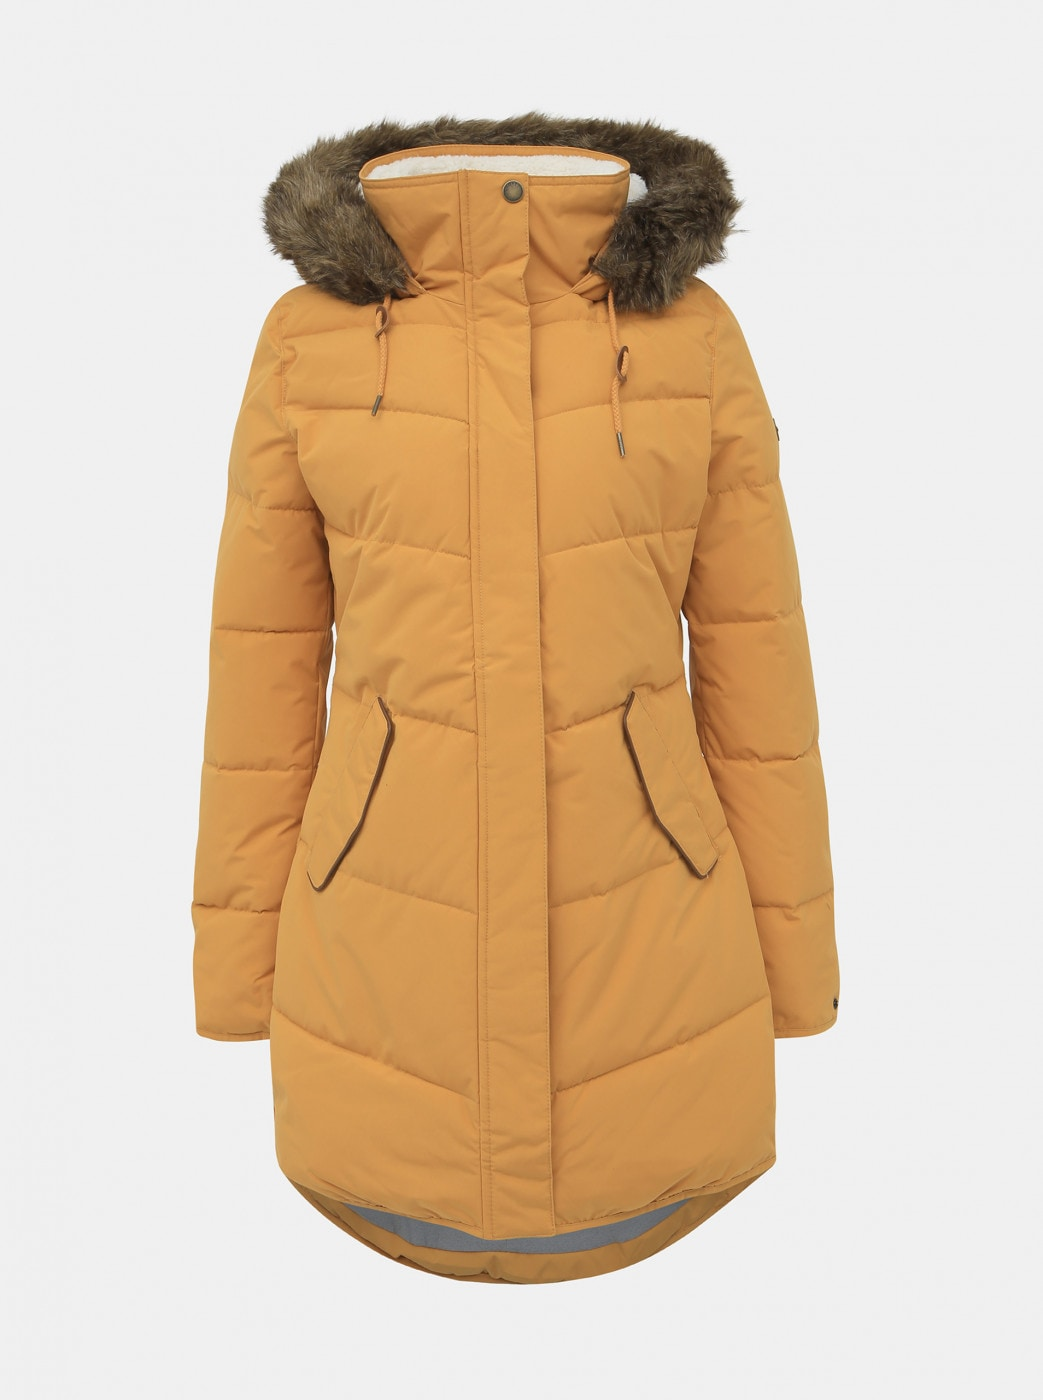 Roxy Ellie Mustard Winter Waterproof Coat